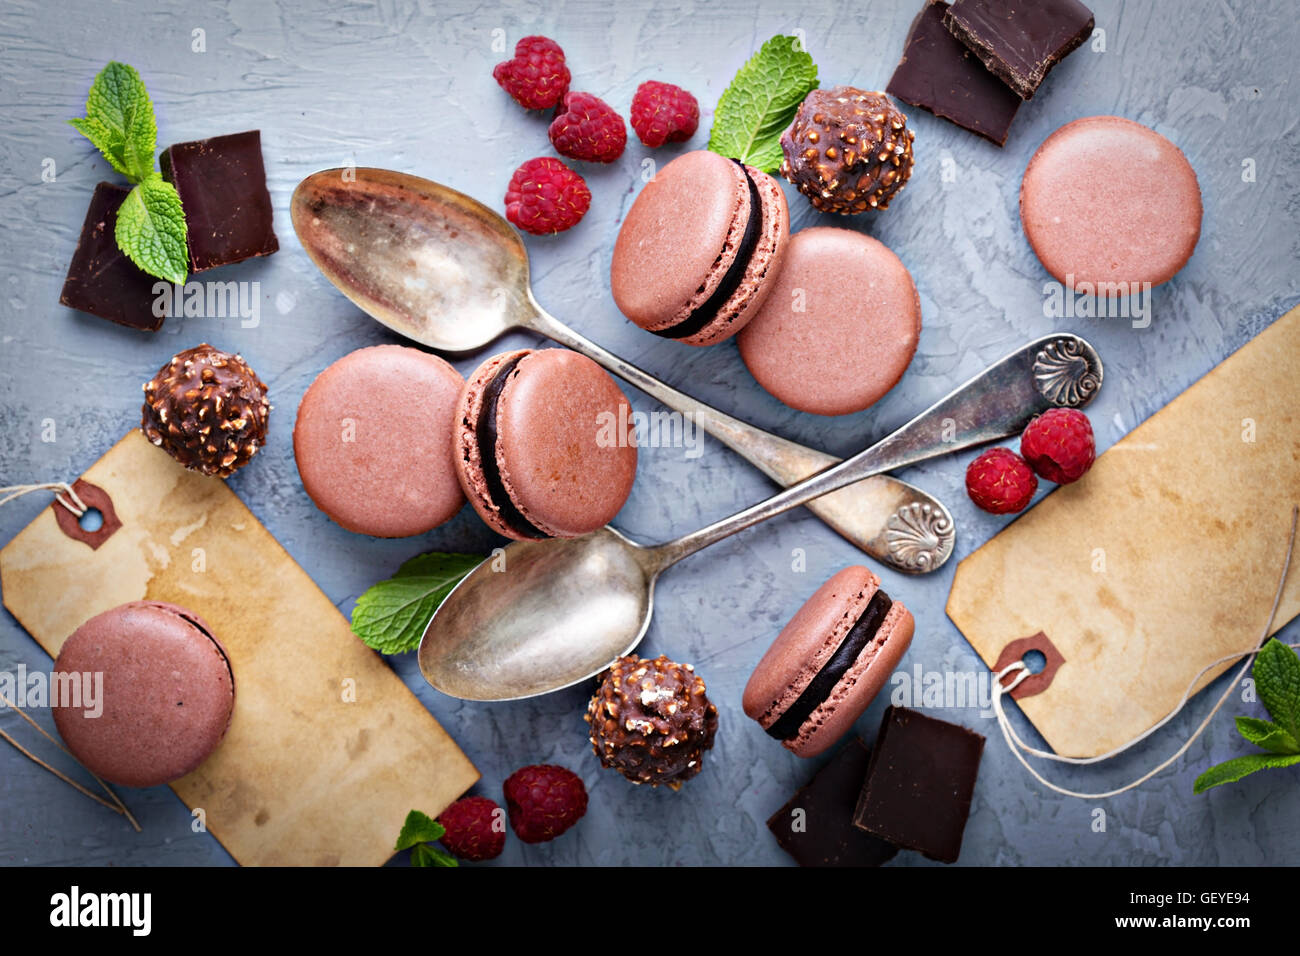 Chocolate french macarons with ganache filling - Stock Image